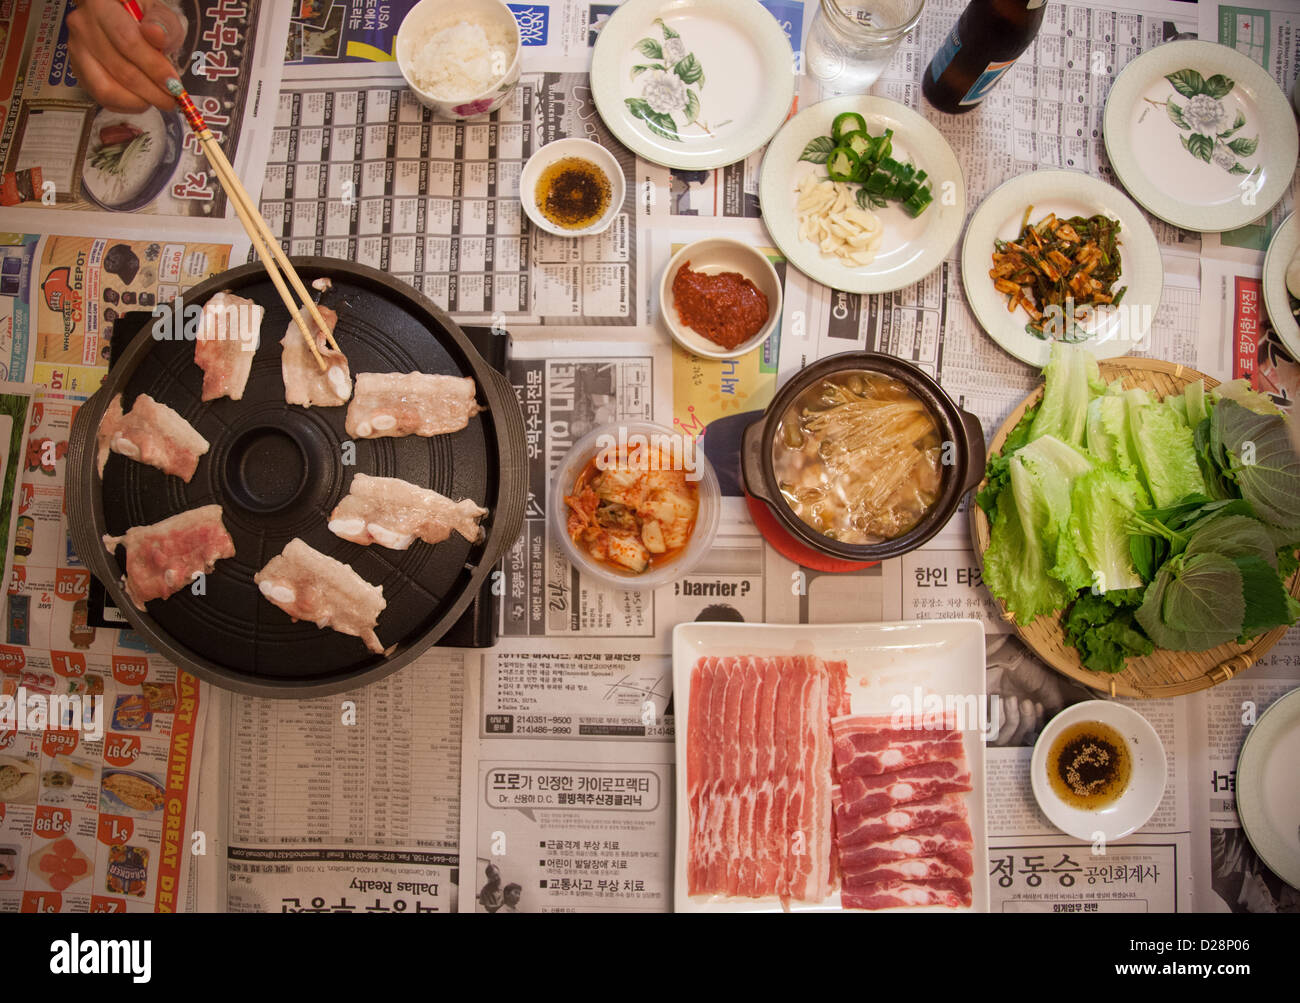 Home Cooked Korean Bbq Pork Belly Dinner On Top Of Newspaper